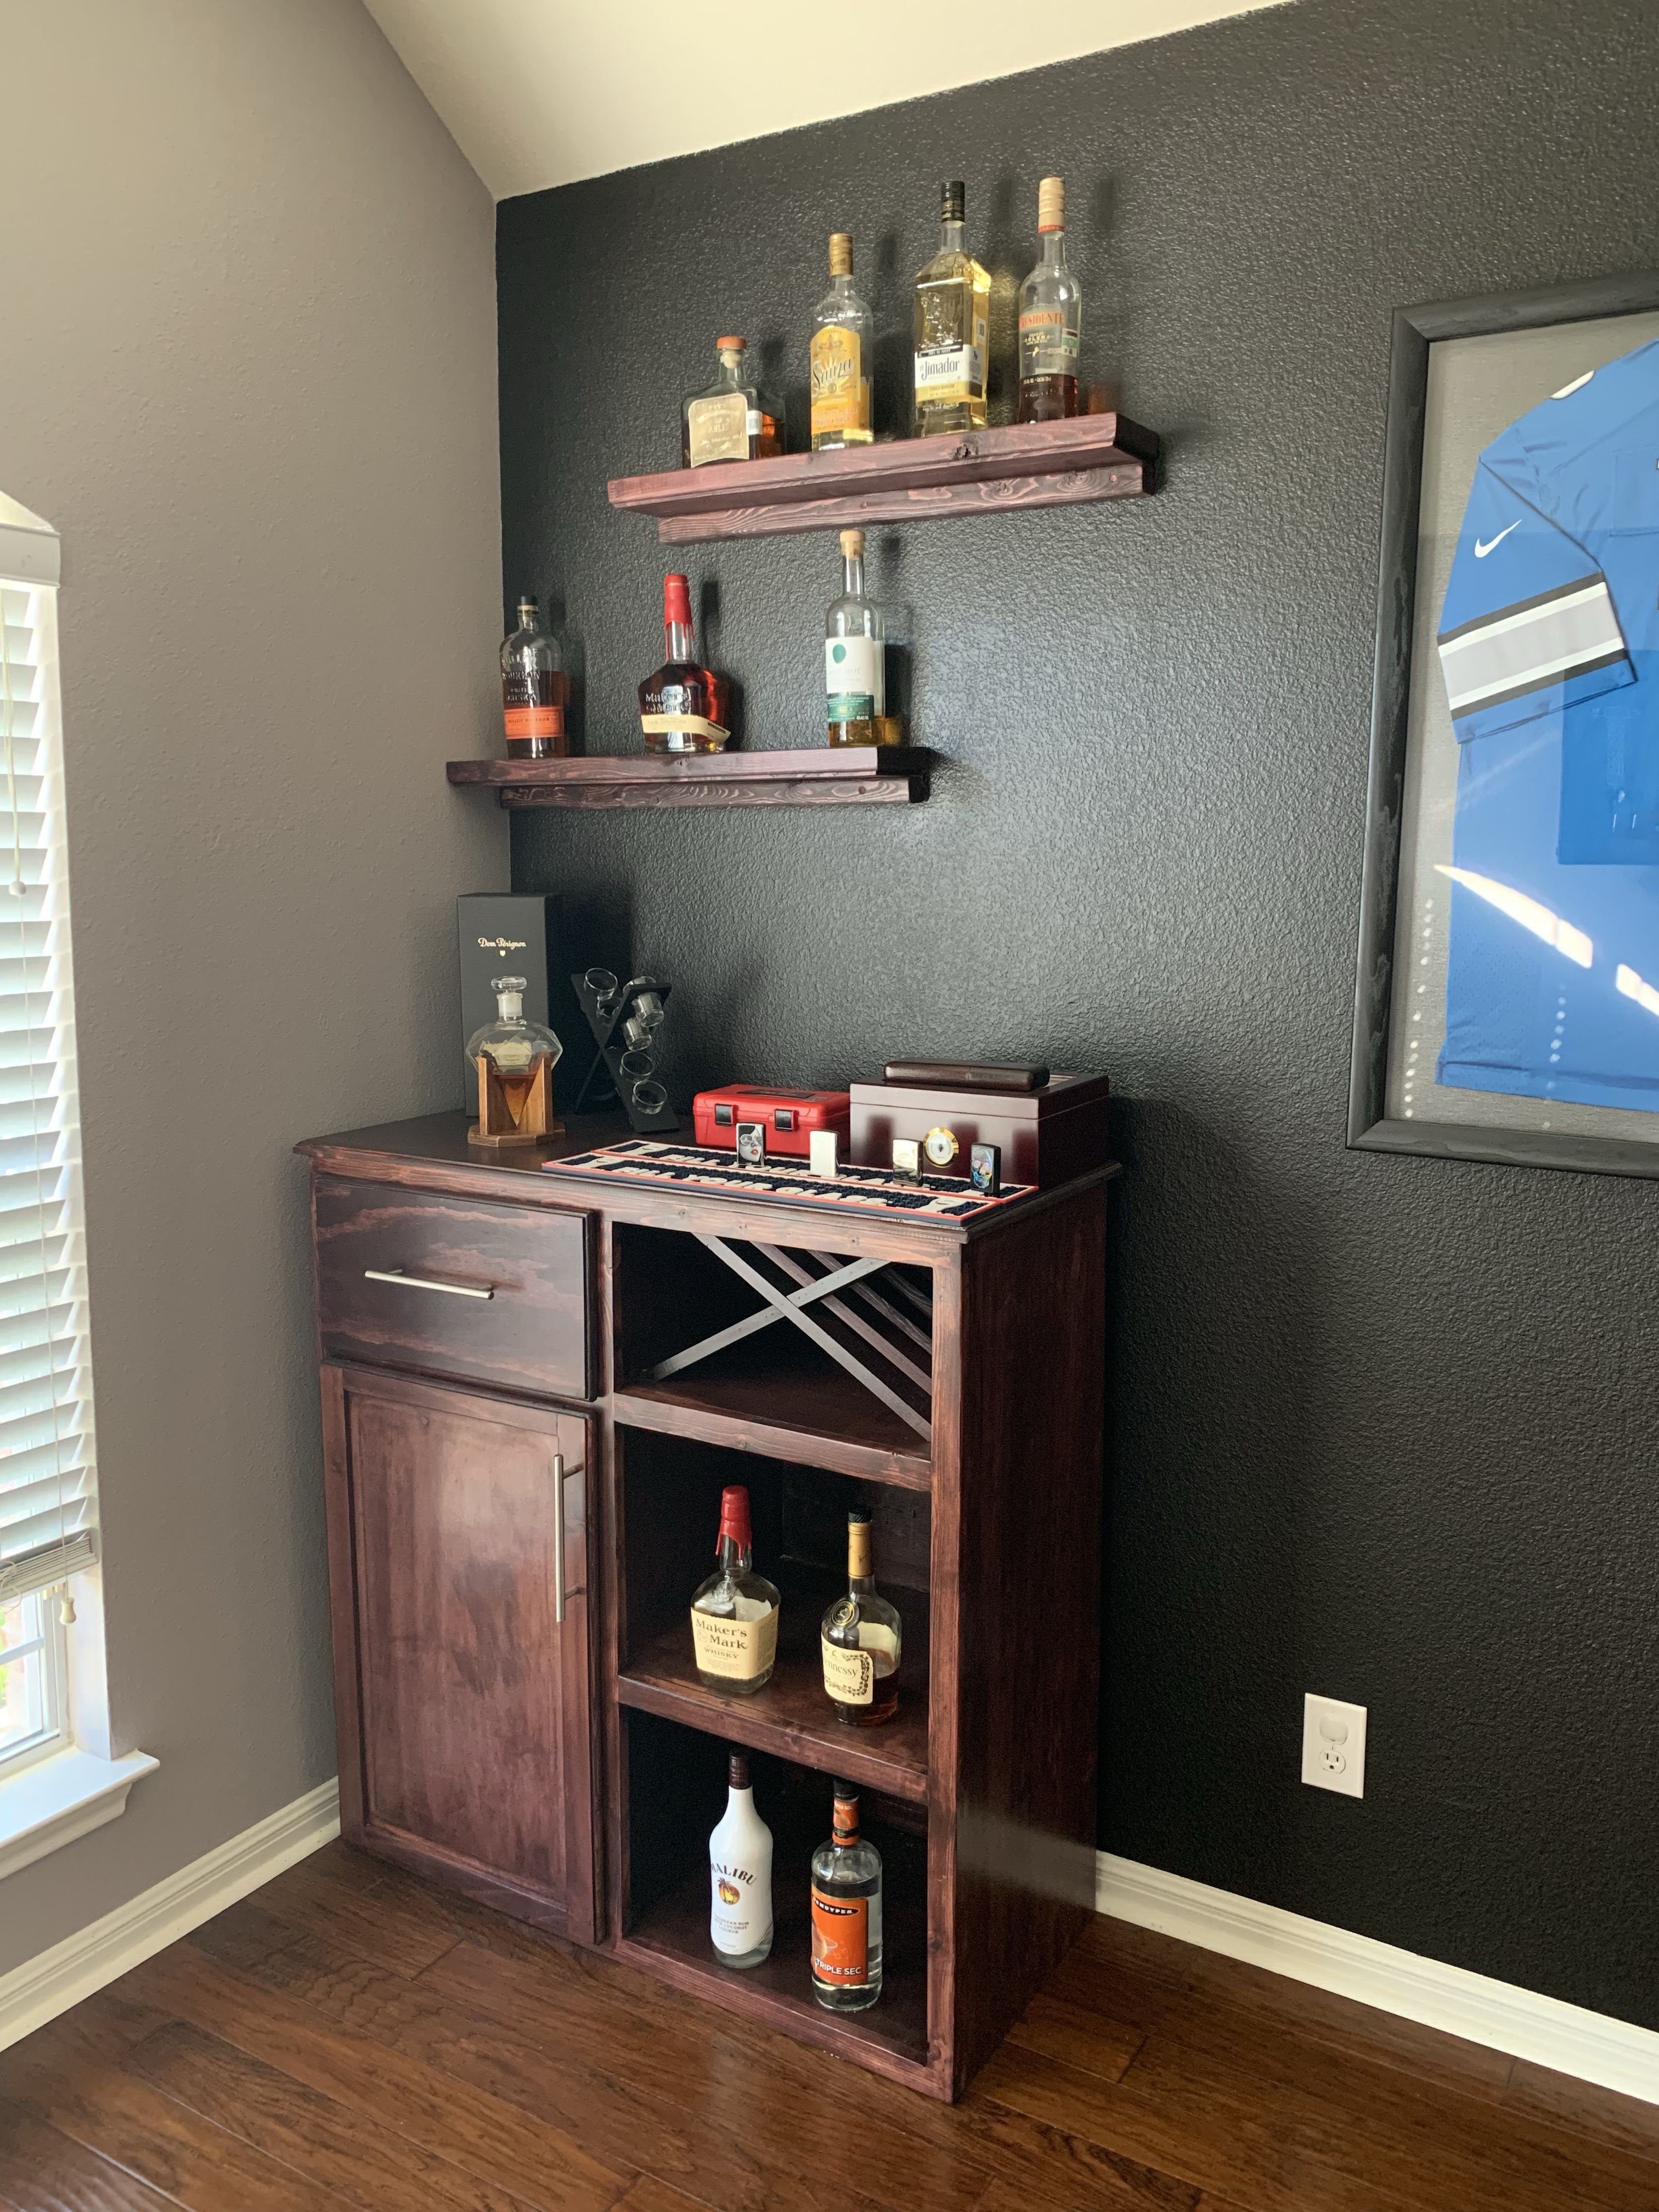 Small Bar I Made For A Friend Diy Home Bar Luxury Kitchen Decor Home Bar Designs